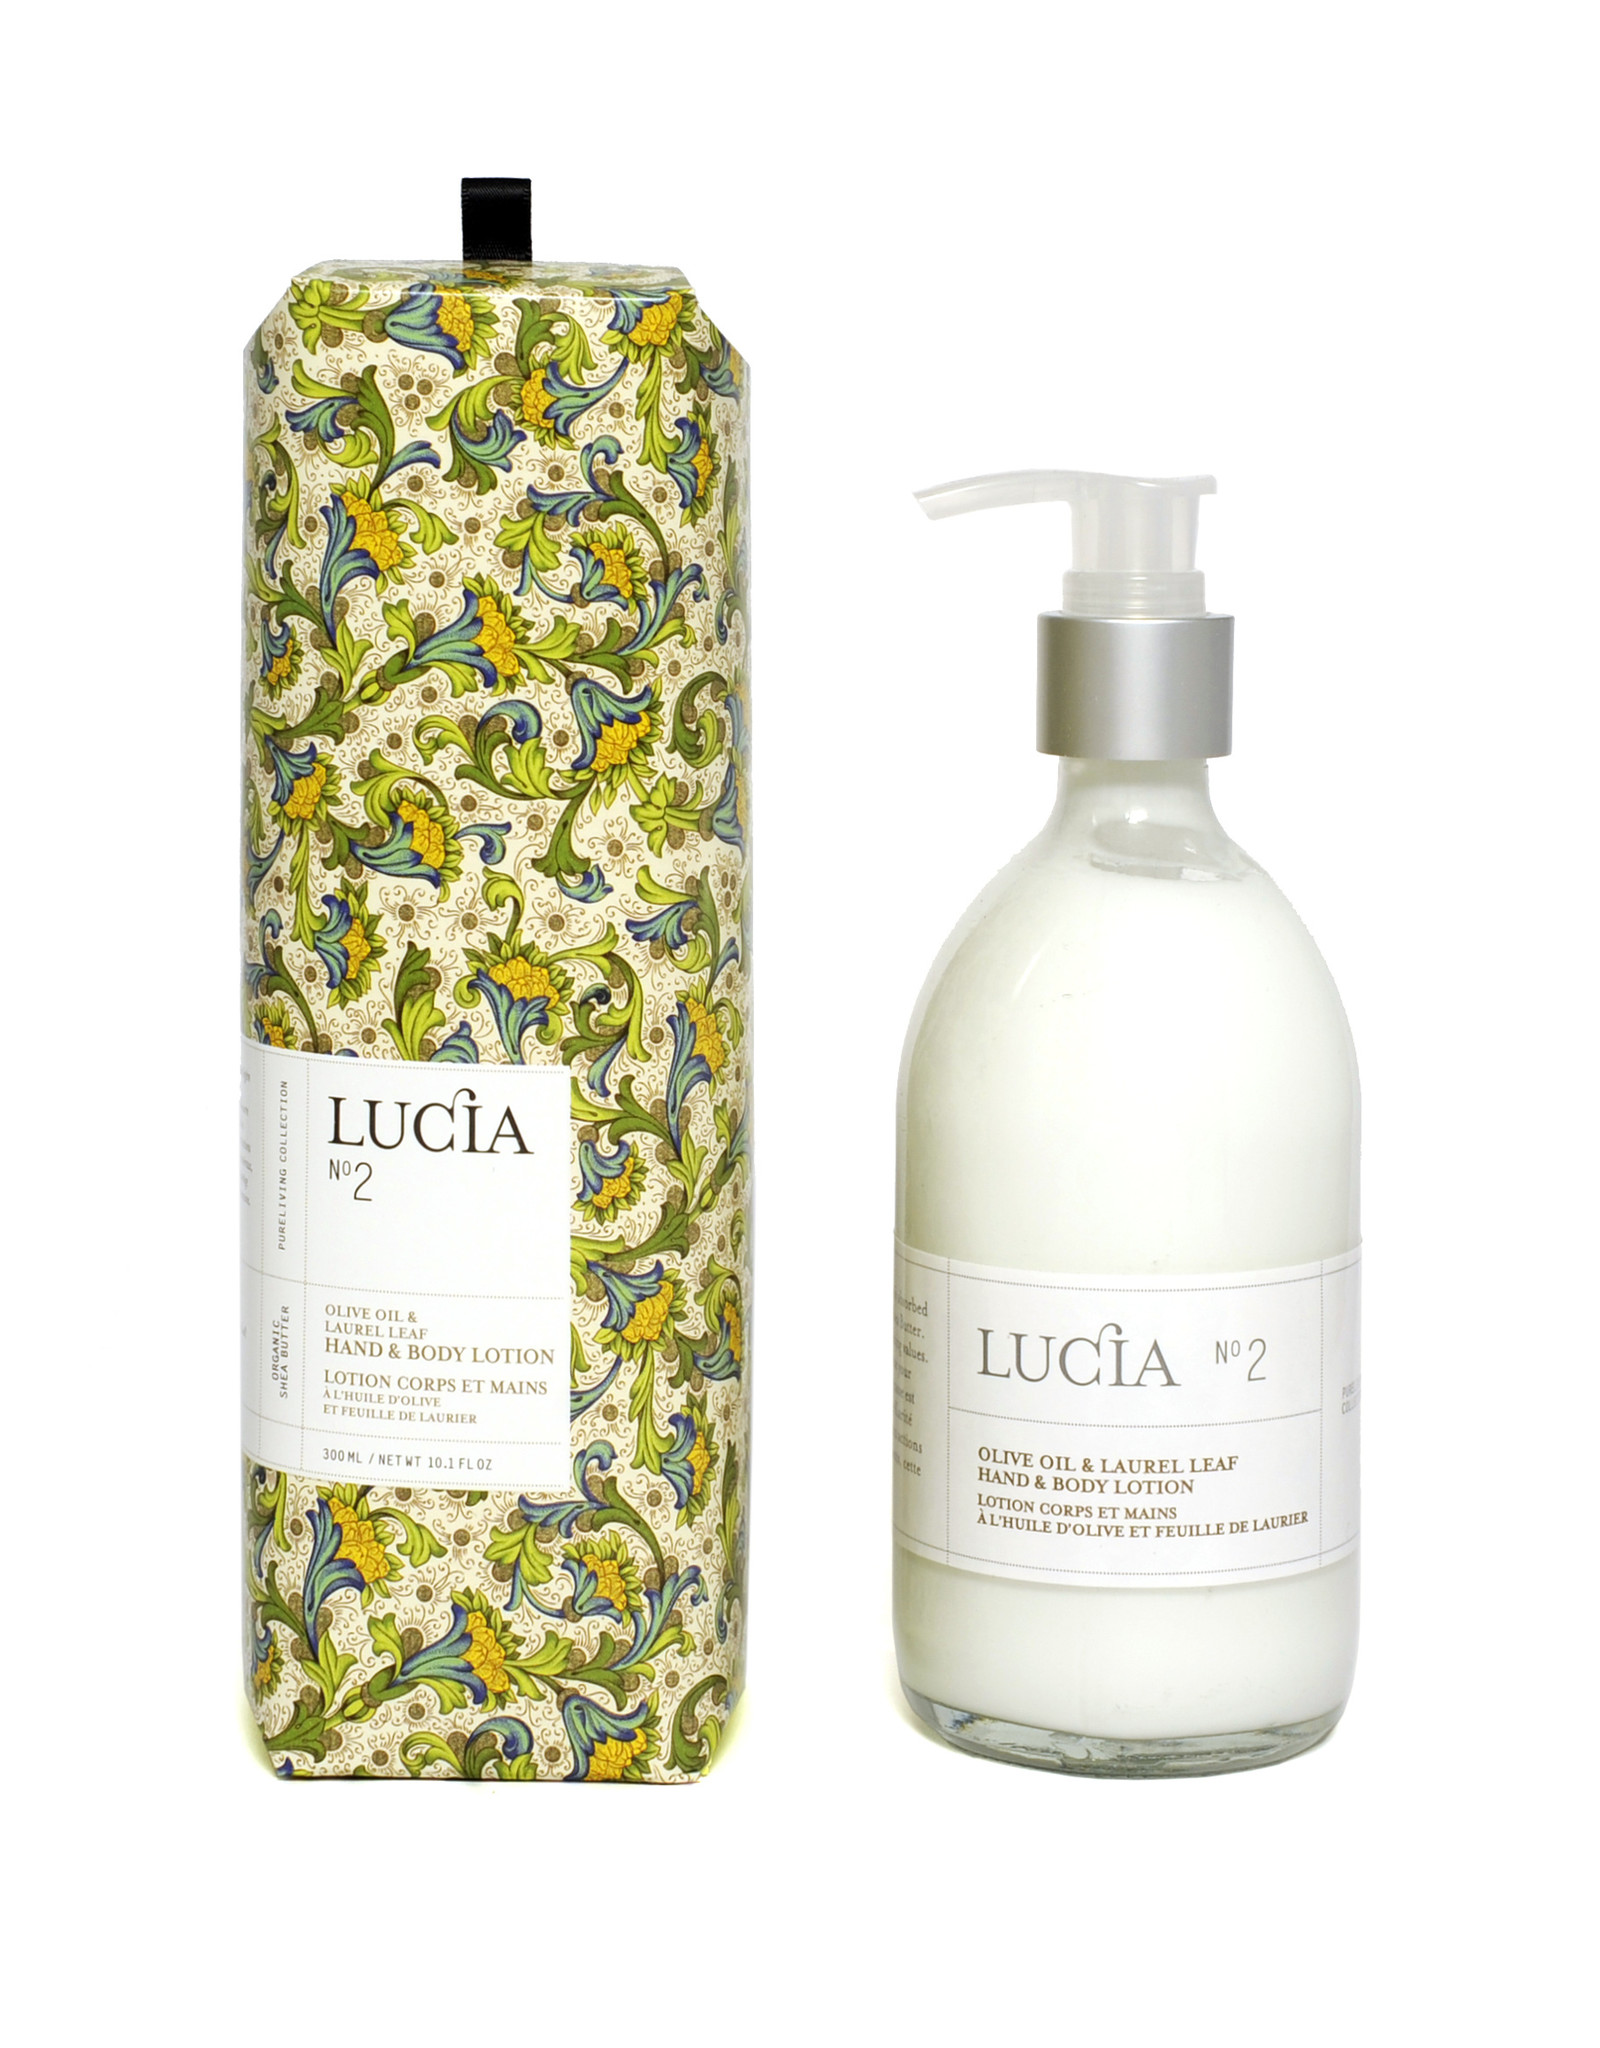 Olive Oil & Laurel Leaf Hand & Body Lotion